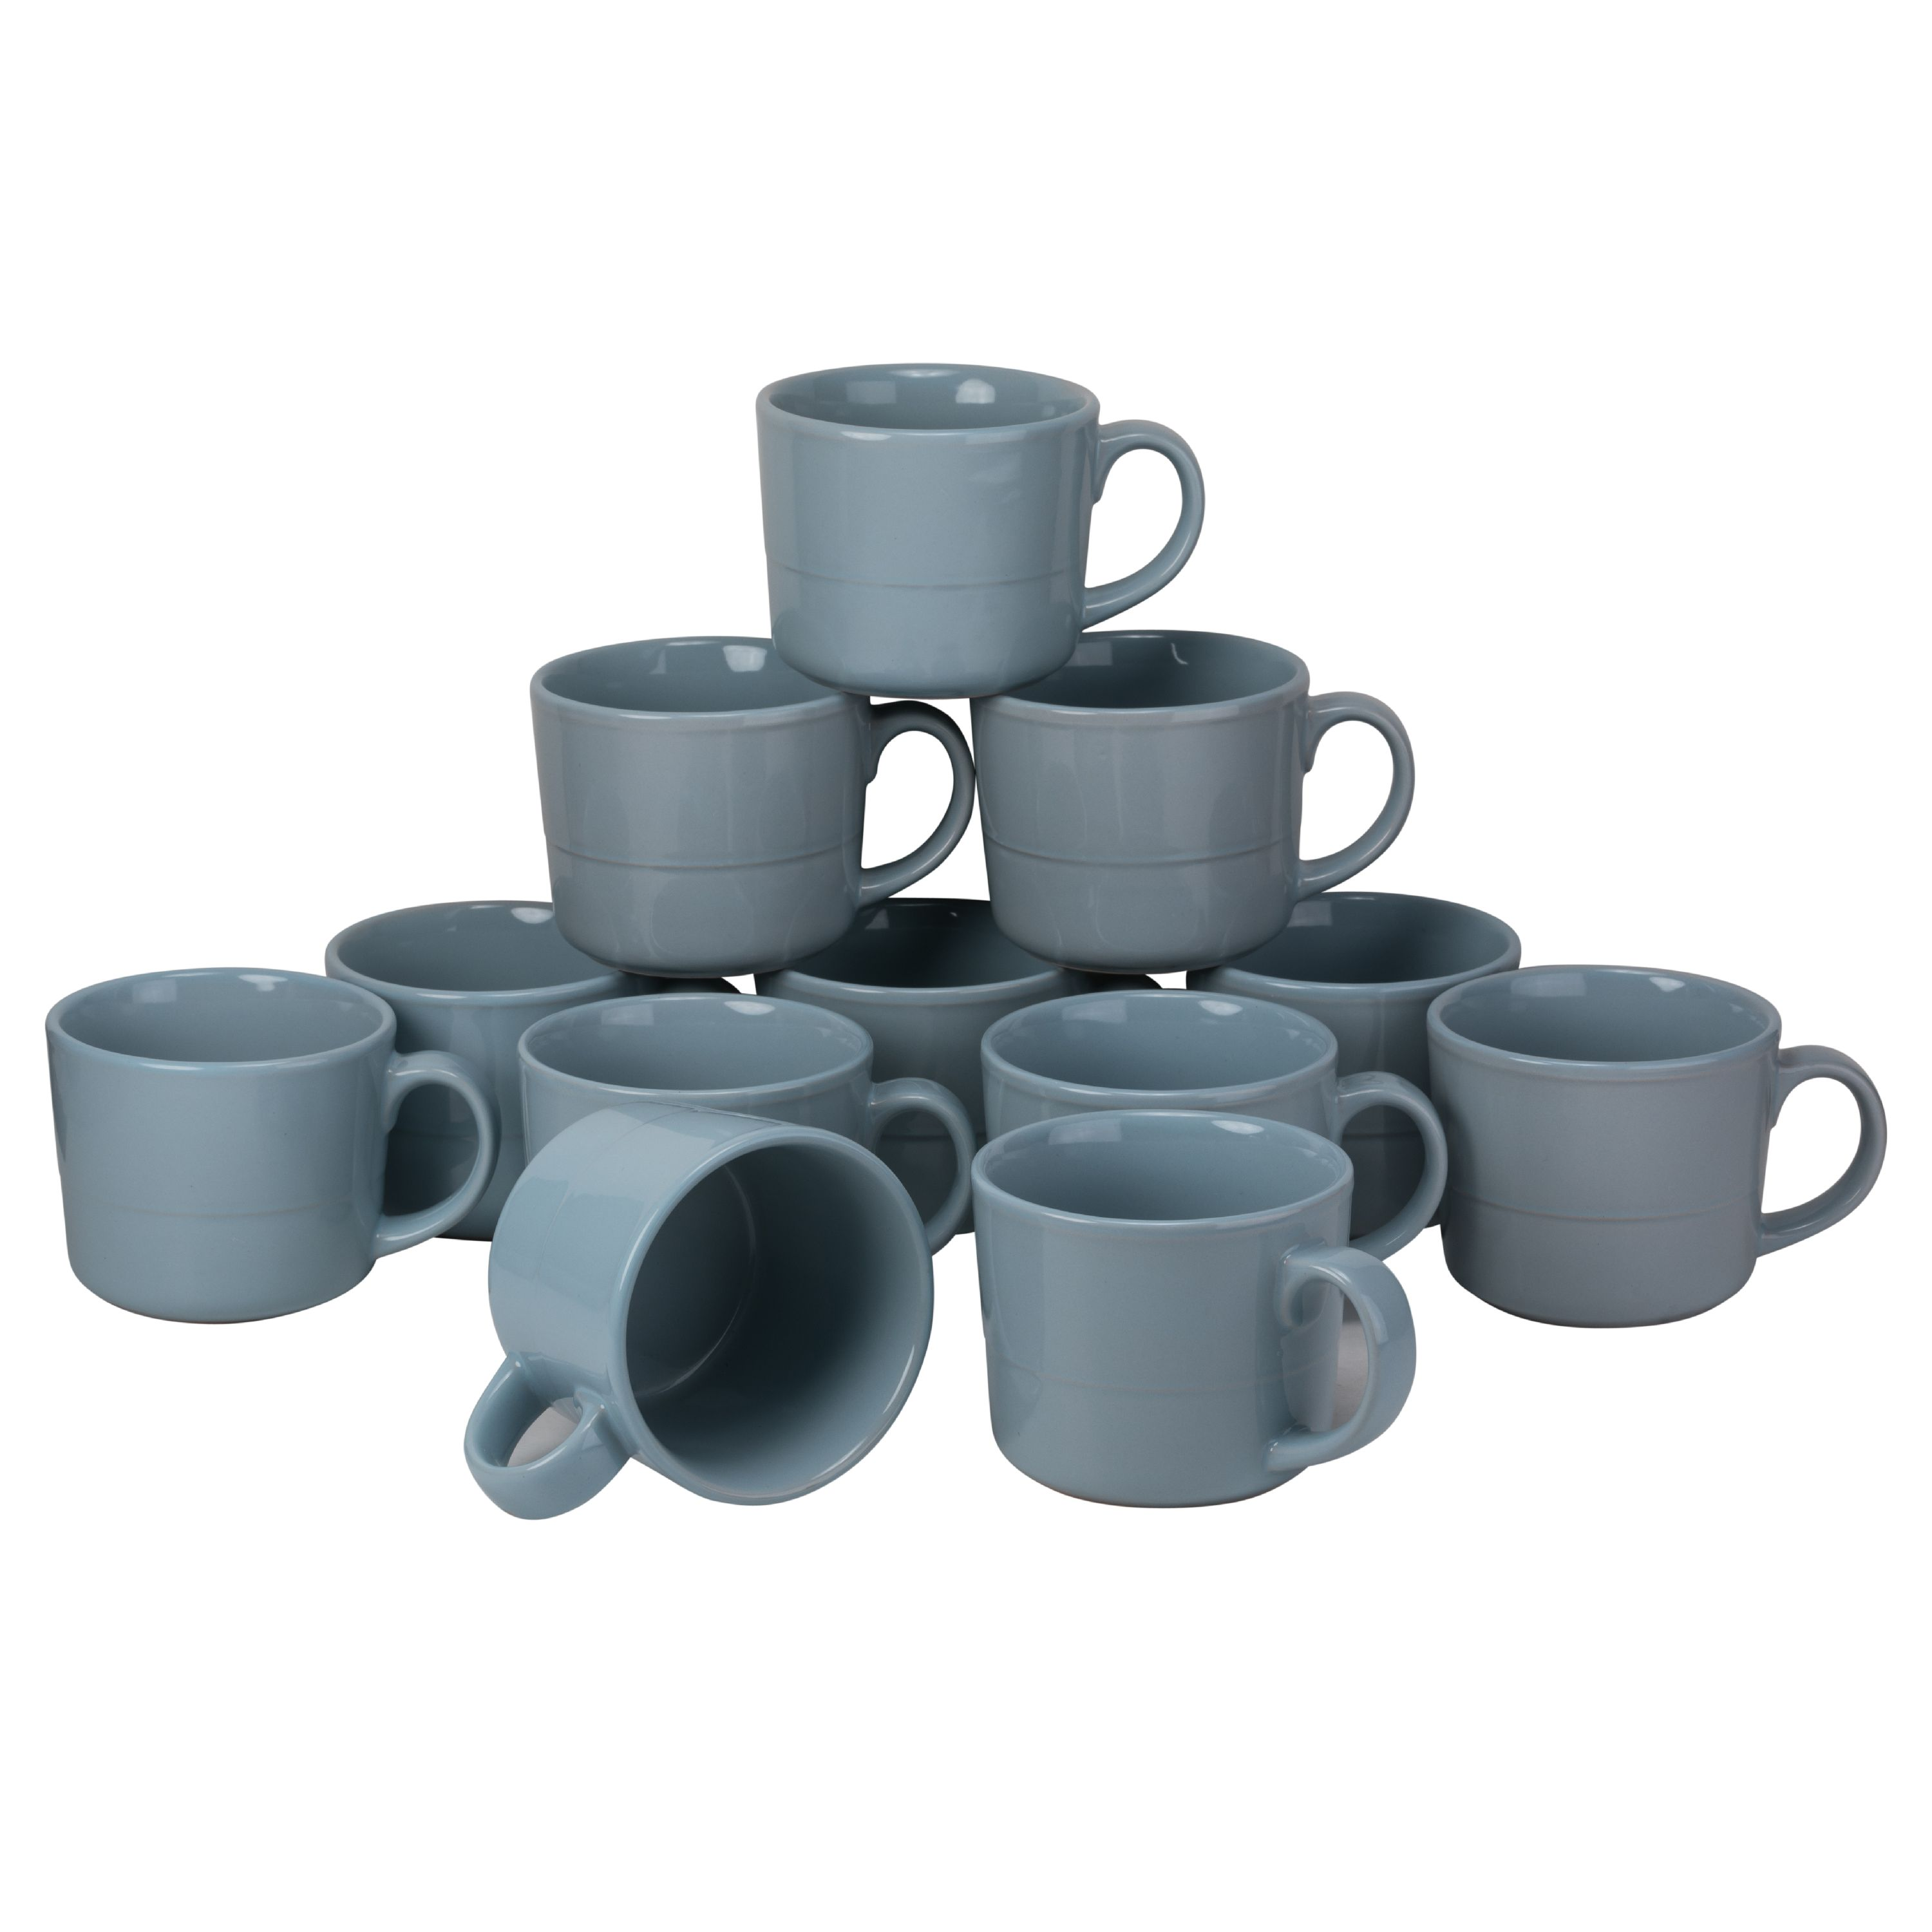 10 Strawberry Street Double Line Catering Pack, Set of 12 Gray Mugs12 oz